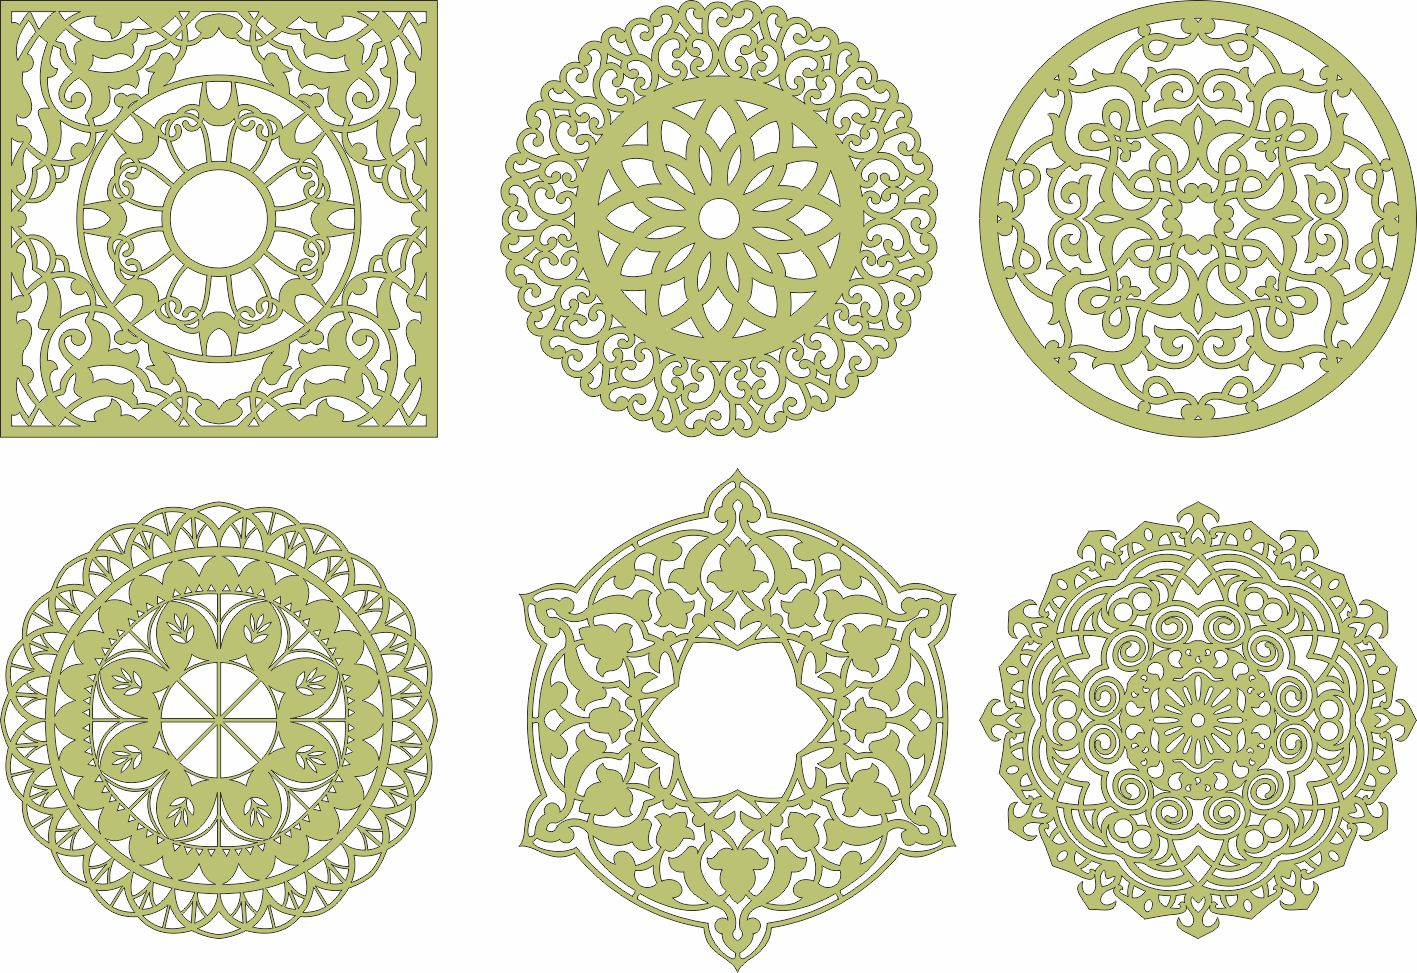 Laser Cut Mandala Decorations Ornament Free CDR Vectors Art